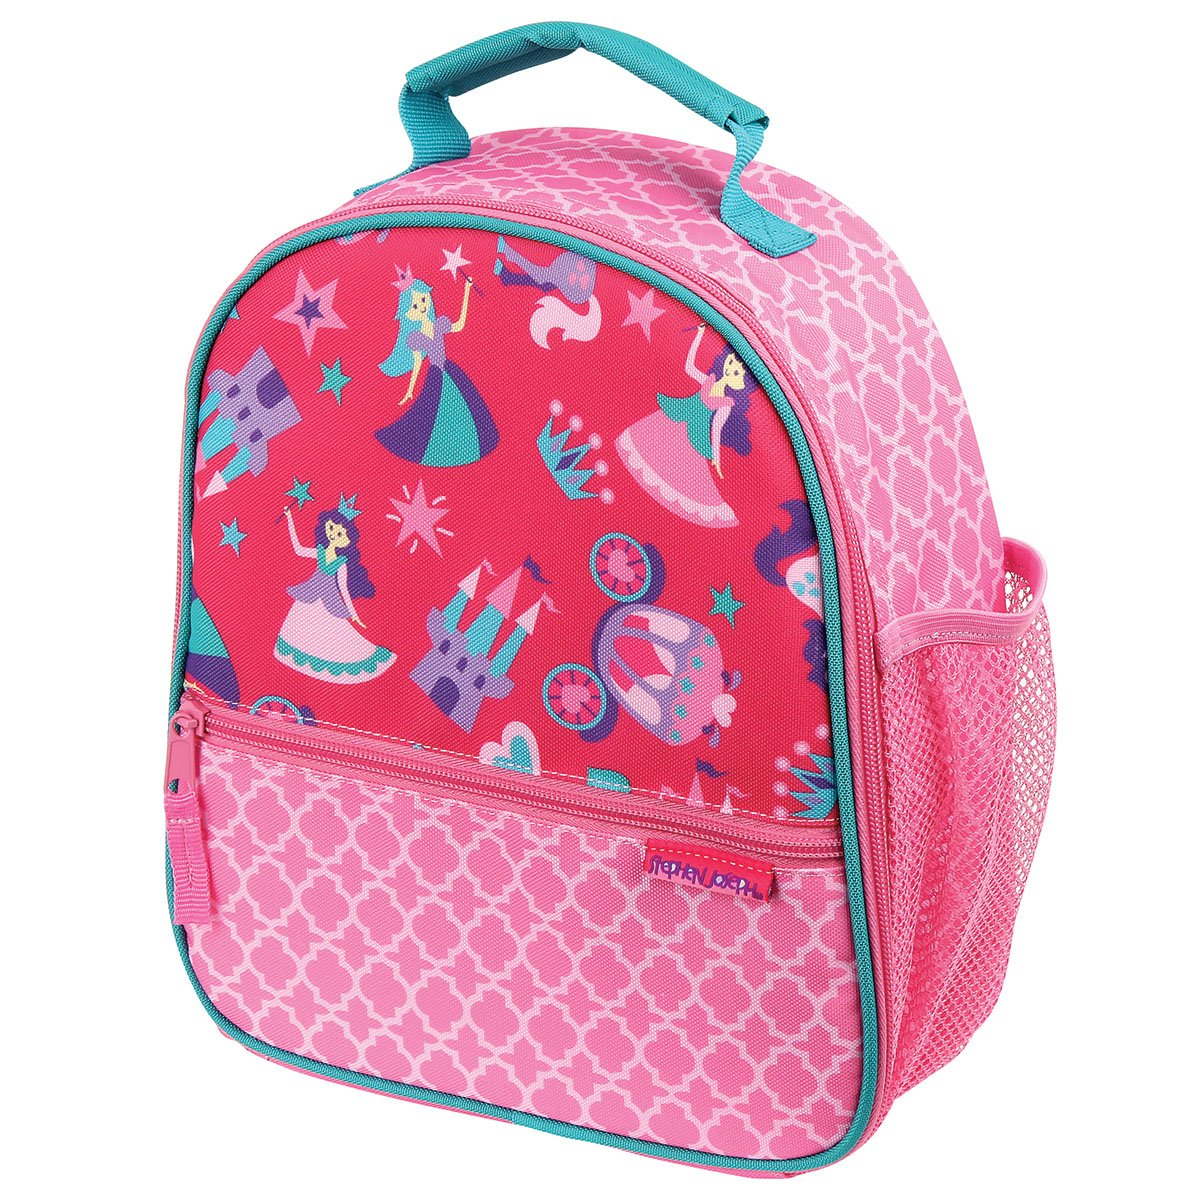 Stephen Joseph All Over Print Lunch Box, Butterfly SJ112125